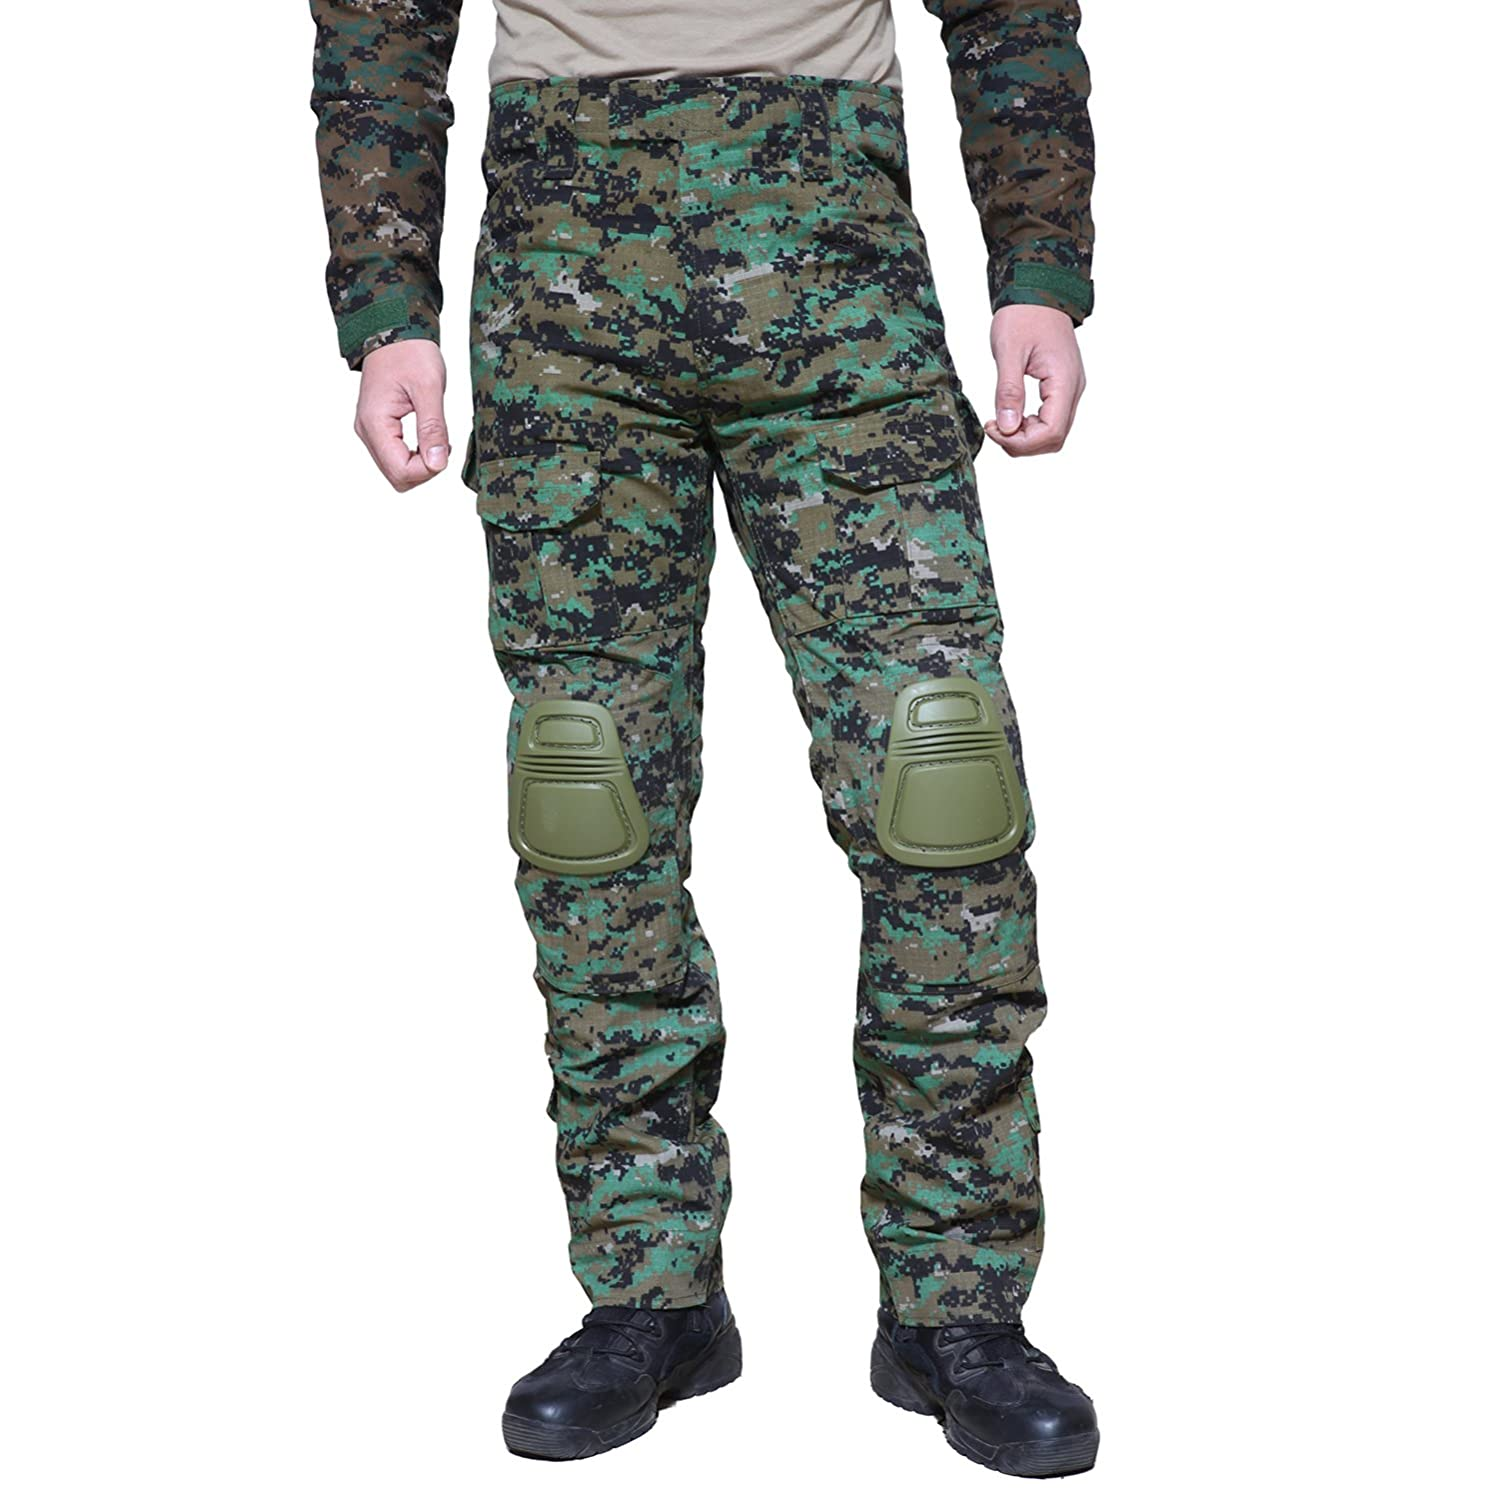 MAGCOMSEN Men's Airsoft Military Ripstop Combat Slim Fit Pants with Knee Pads MCSKZ-34